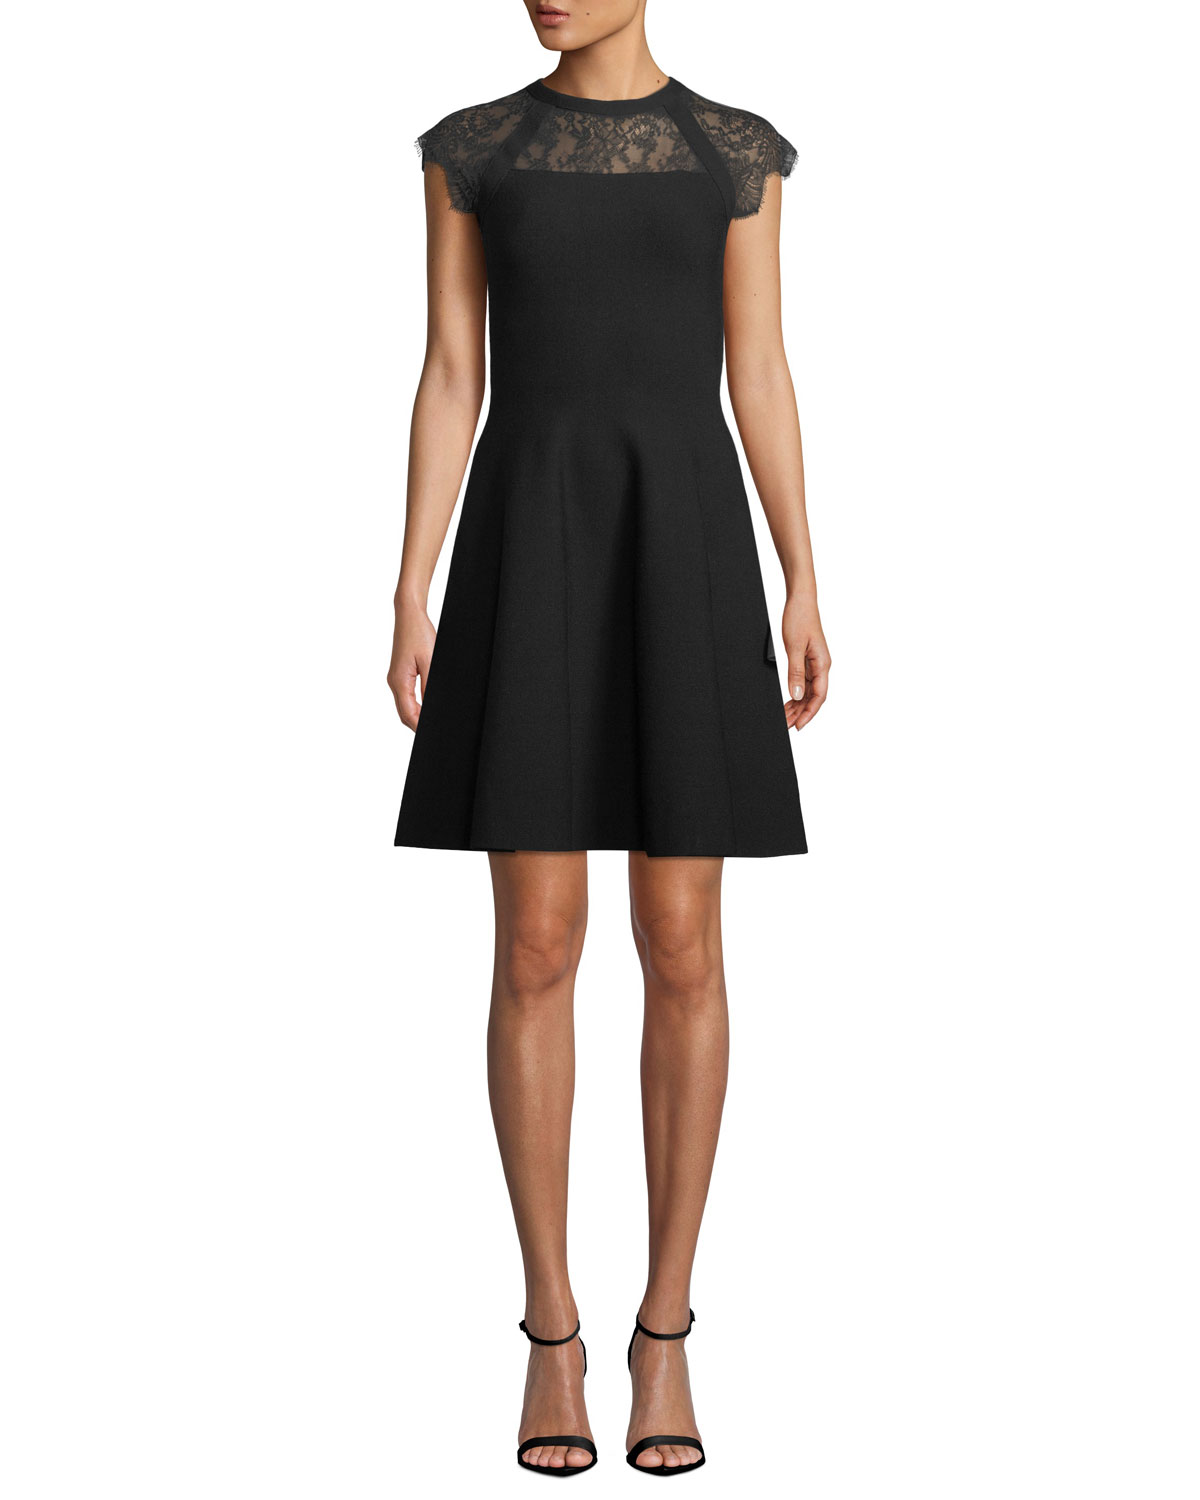 Milly Lace Yoke Cap Sleeve Fit And Flare Short Dress